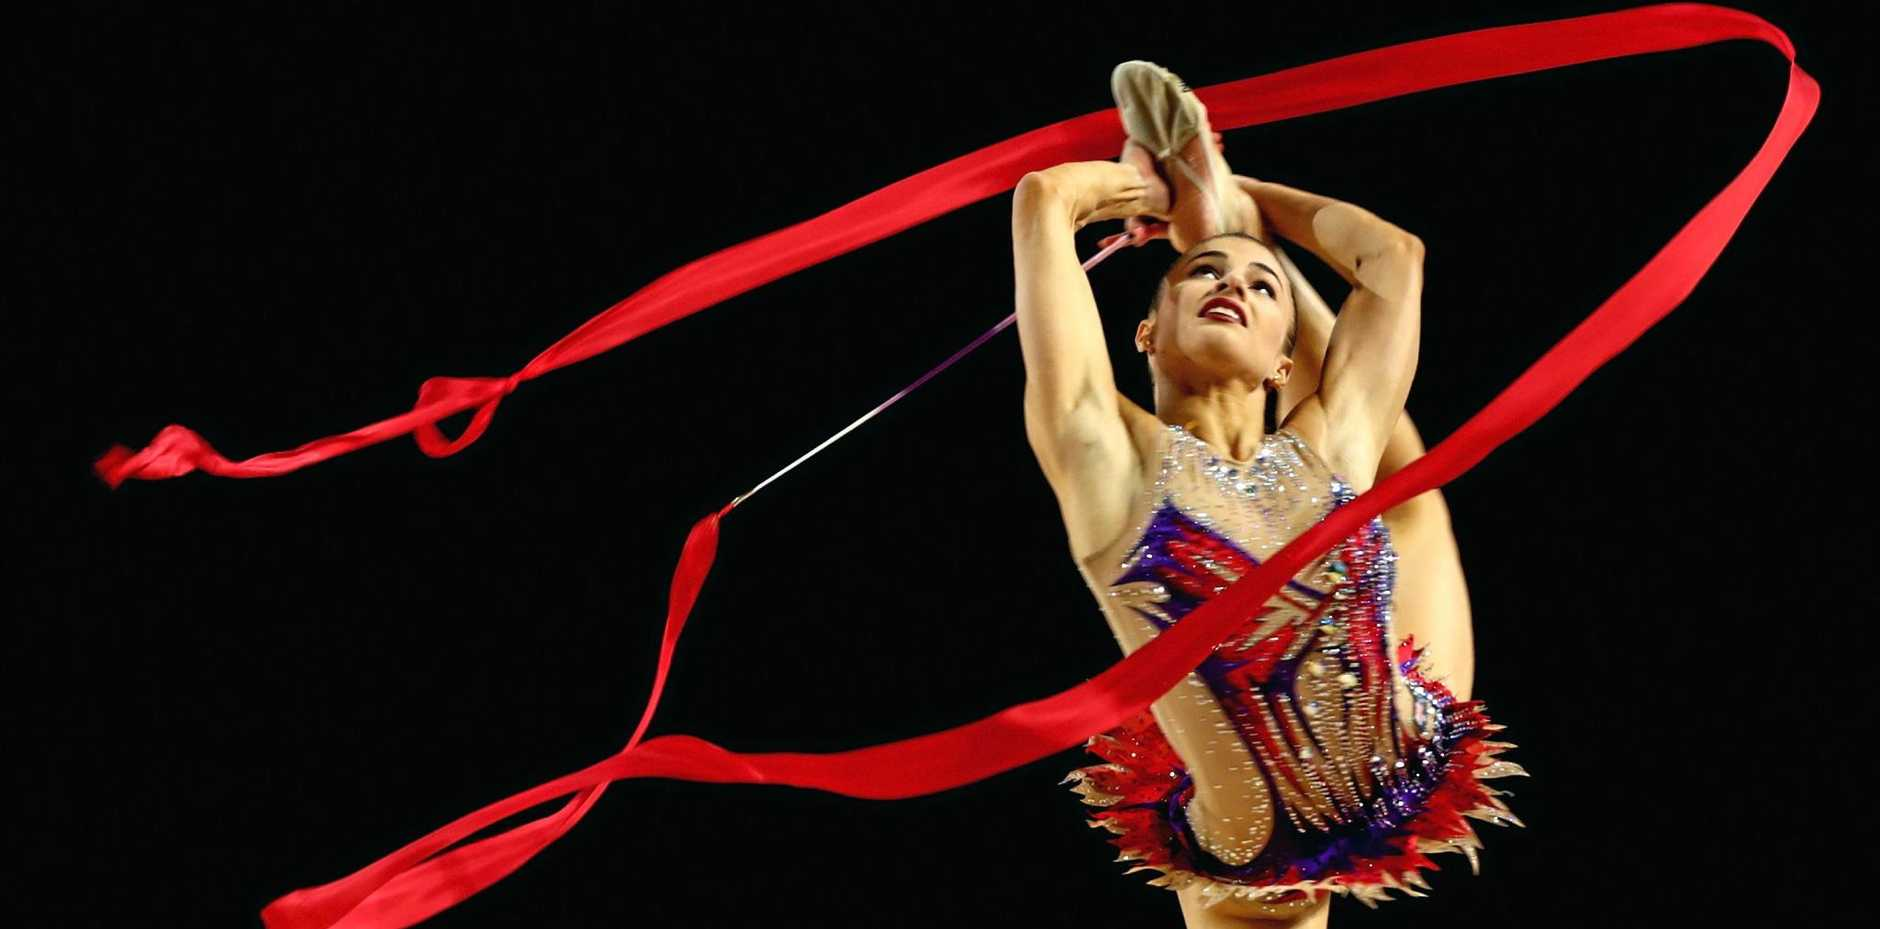 FINE TUNING: Danielle Prince competes in the rhythmic gymnastics at the 2016 national titles.